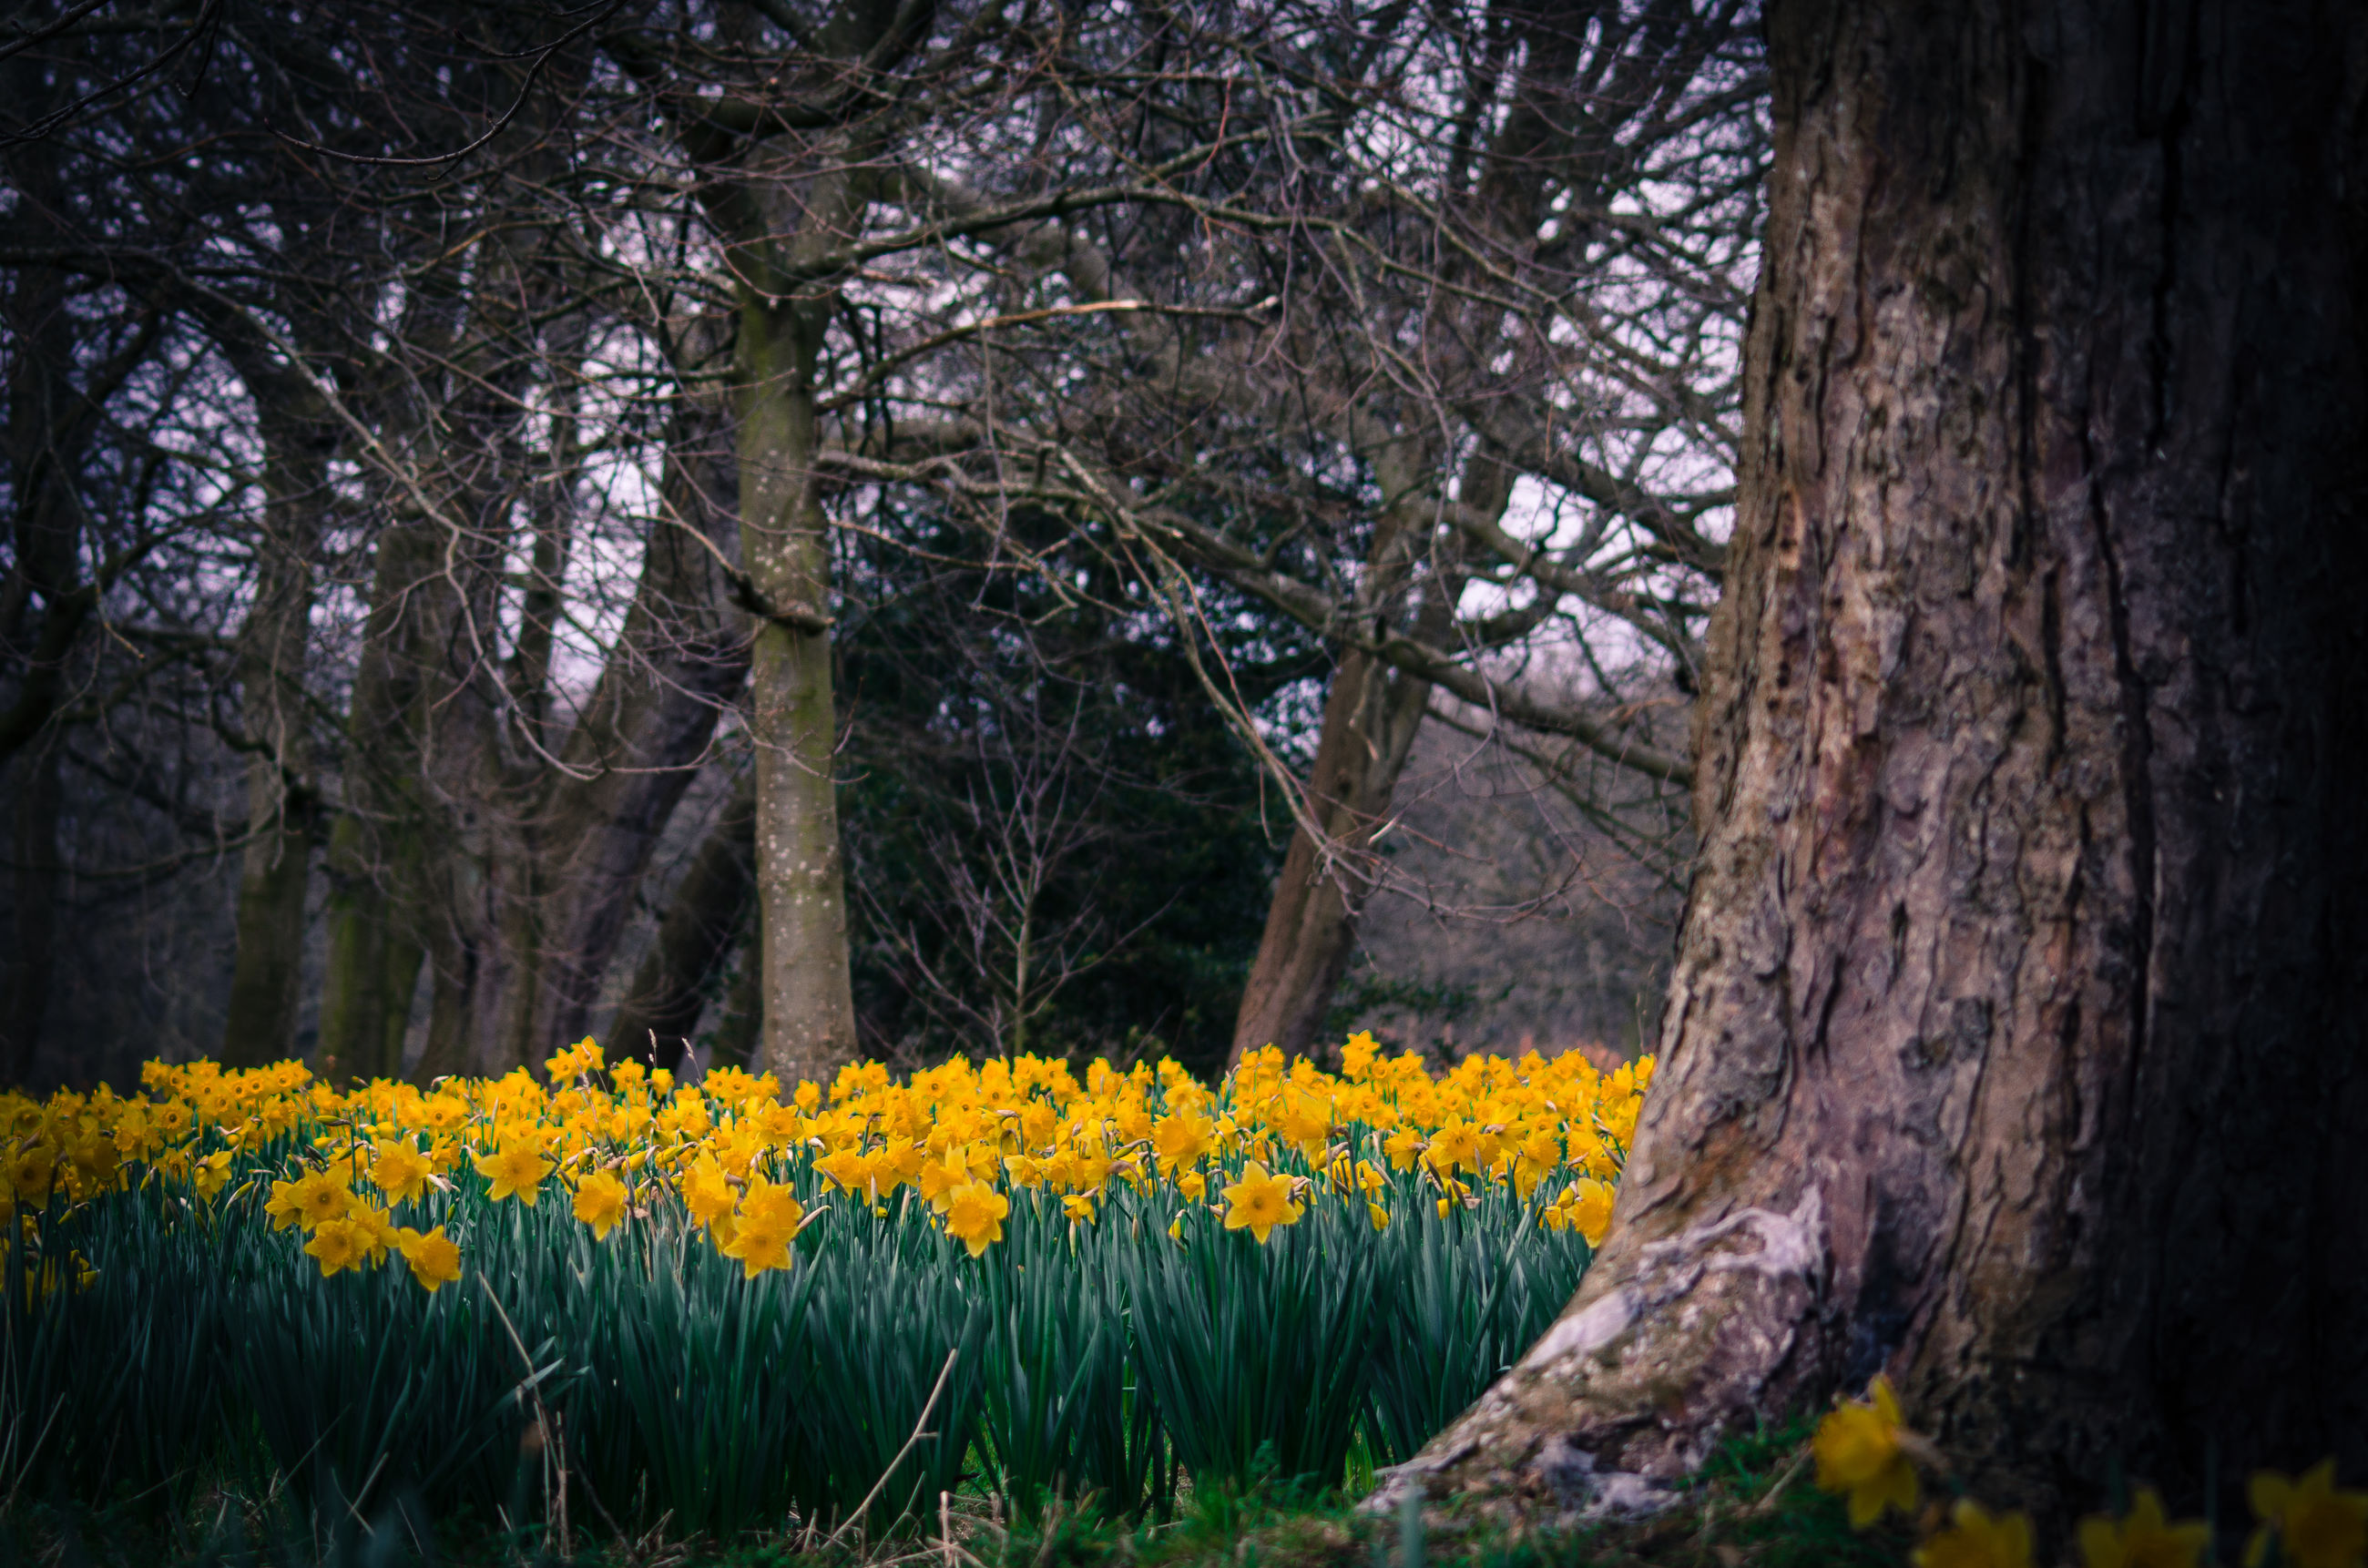 flower, tree, yellow, growth, tree trunk, nature, beauty in nature, freshness, fragility, tranquility, branch, tranquil scene, forest, blossom, day, no people, field, outdoors, plant, in bloom